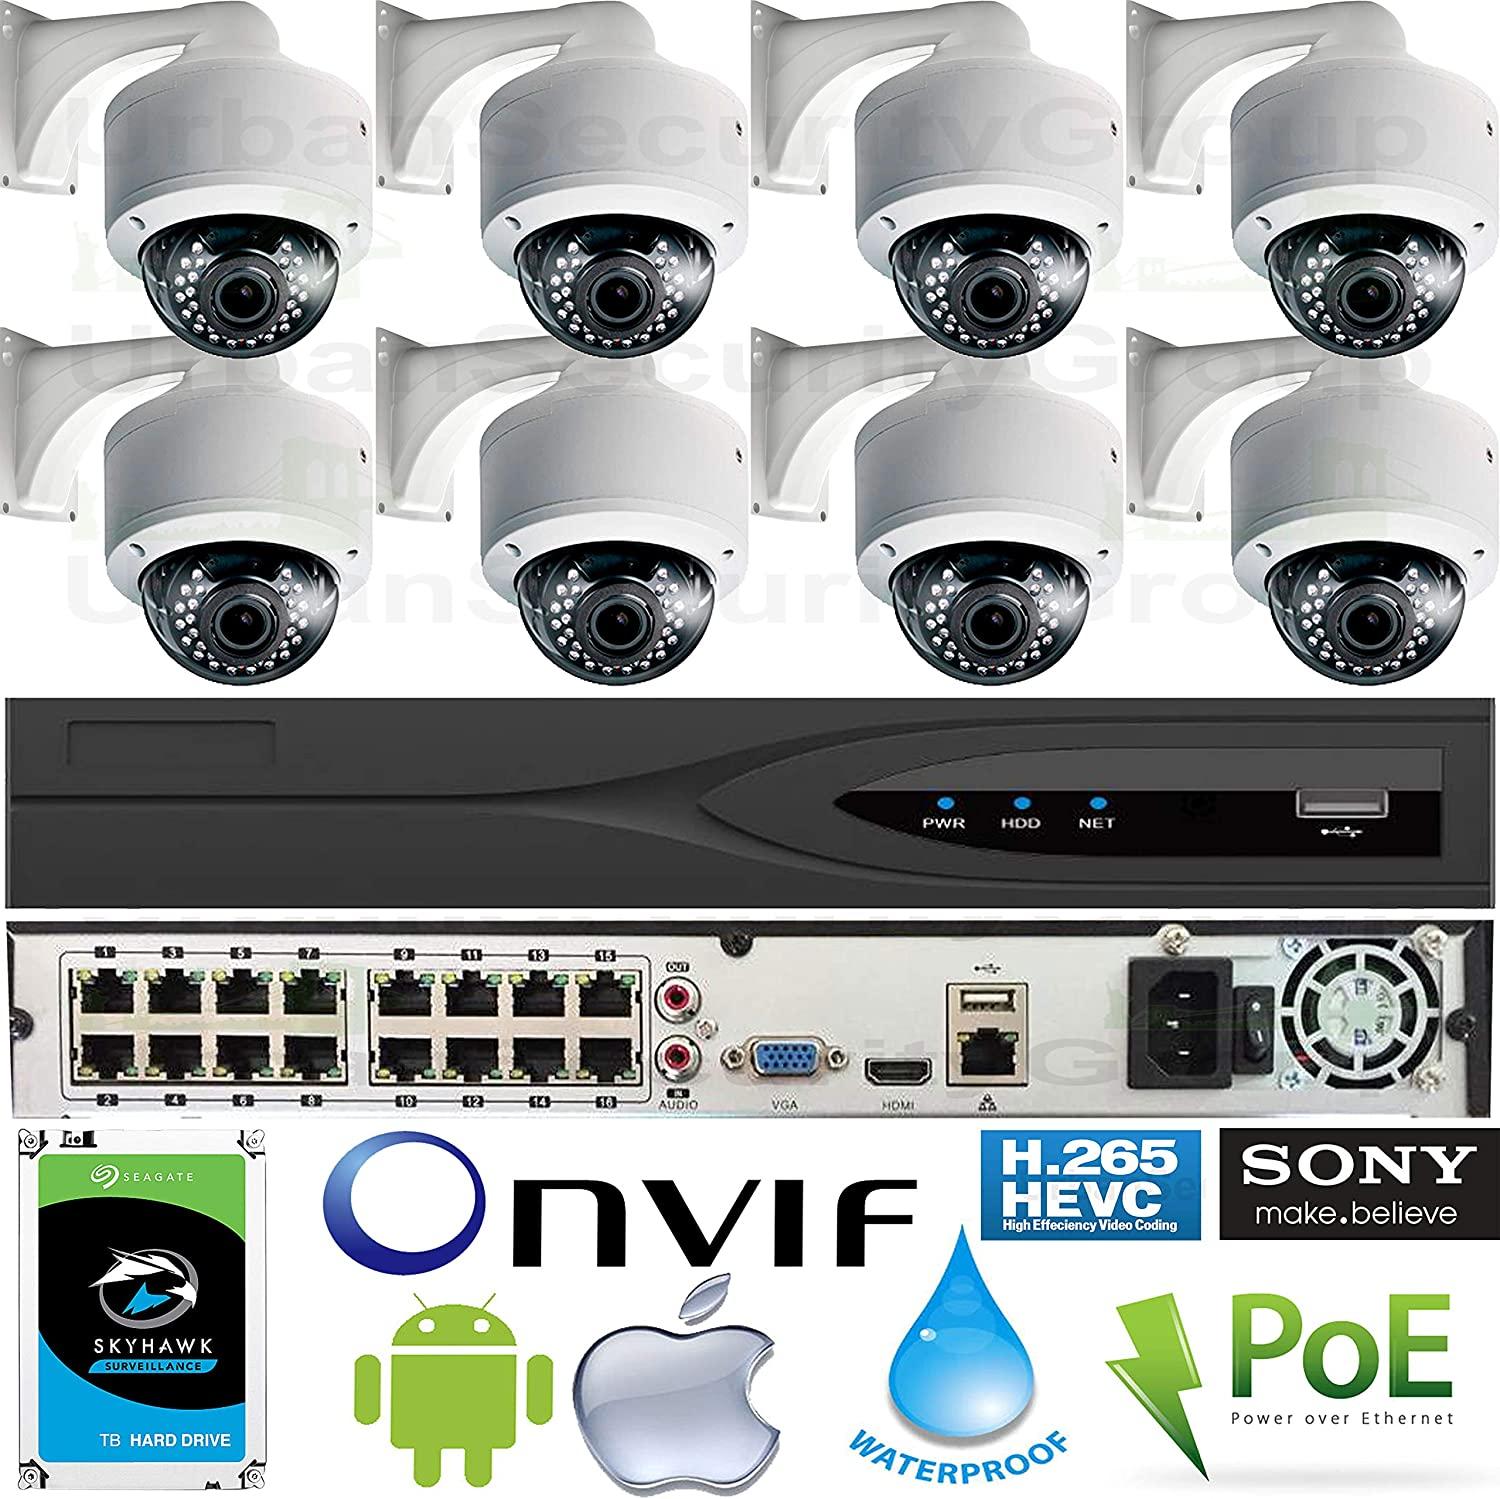 Urban Security Group 16 Channel IP Camera System 1x Ultra 4K 16 Channel PoE NVR 8x 5MP Vari-Focal Lens PoE Dome Outdoor Cameras 1x 2TB HDD Pro Grade